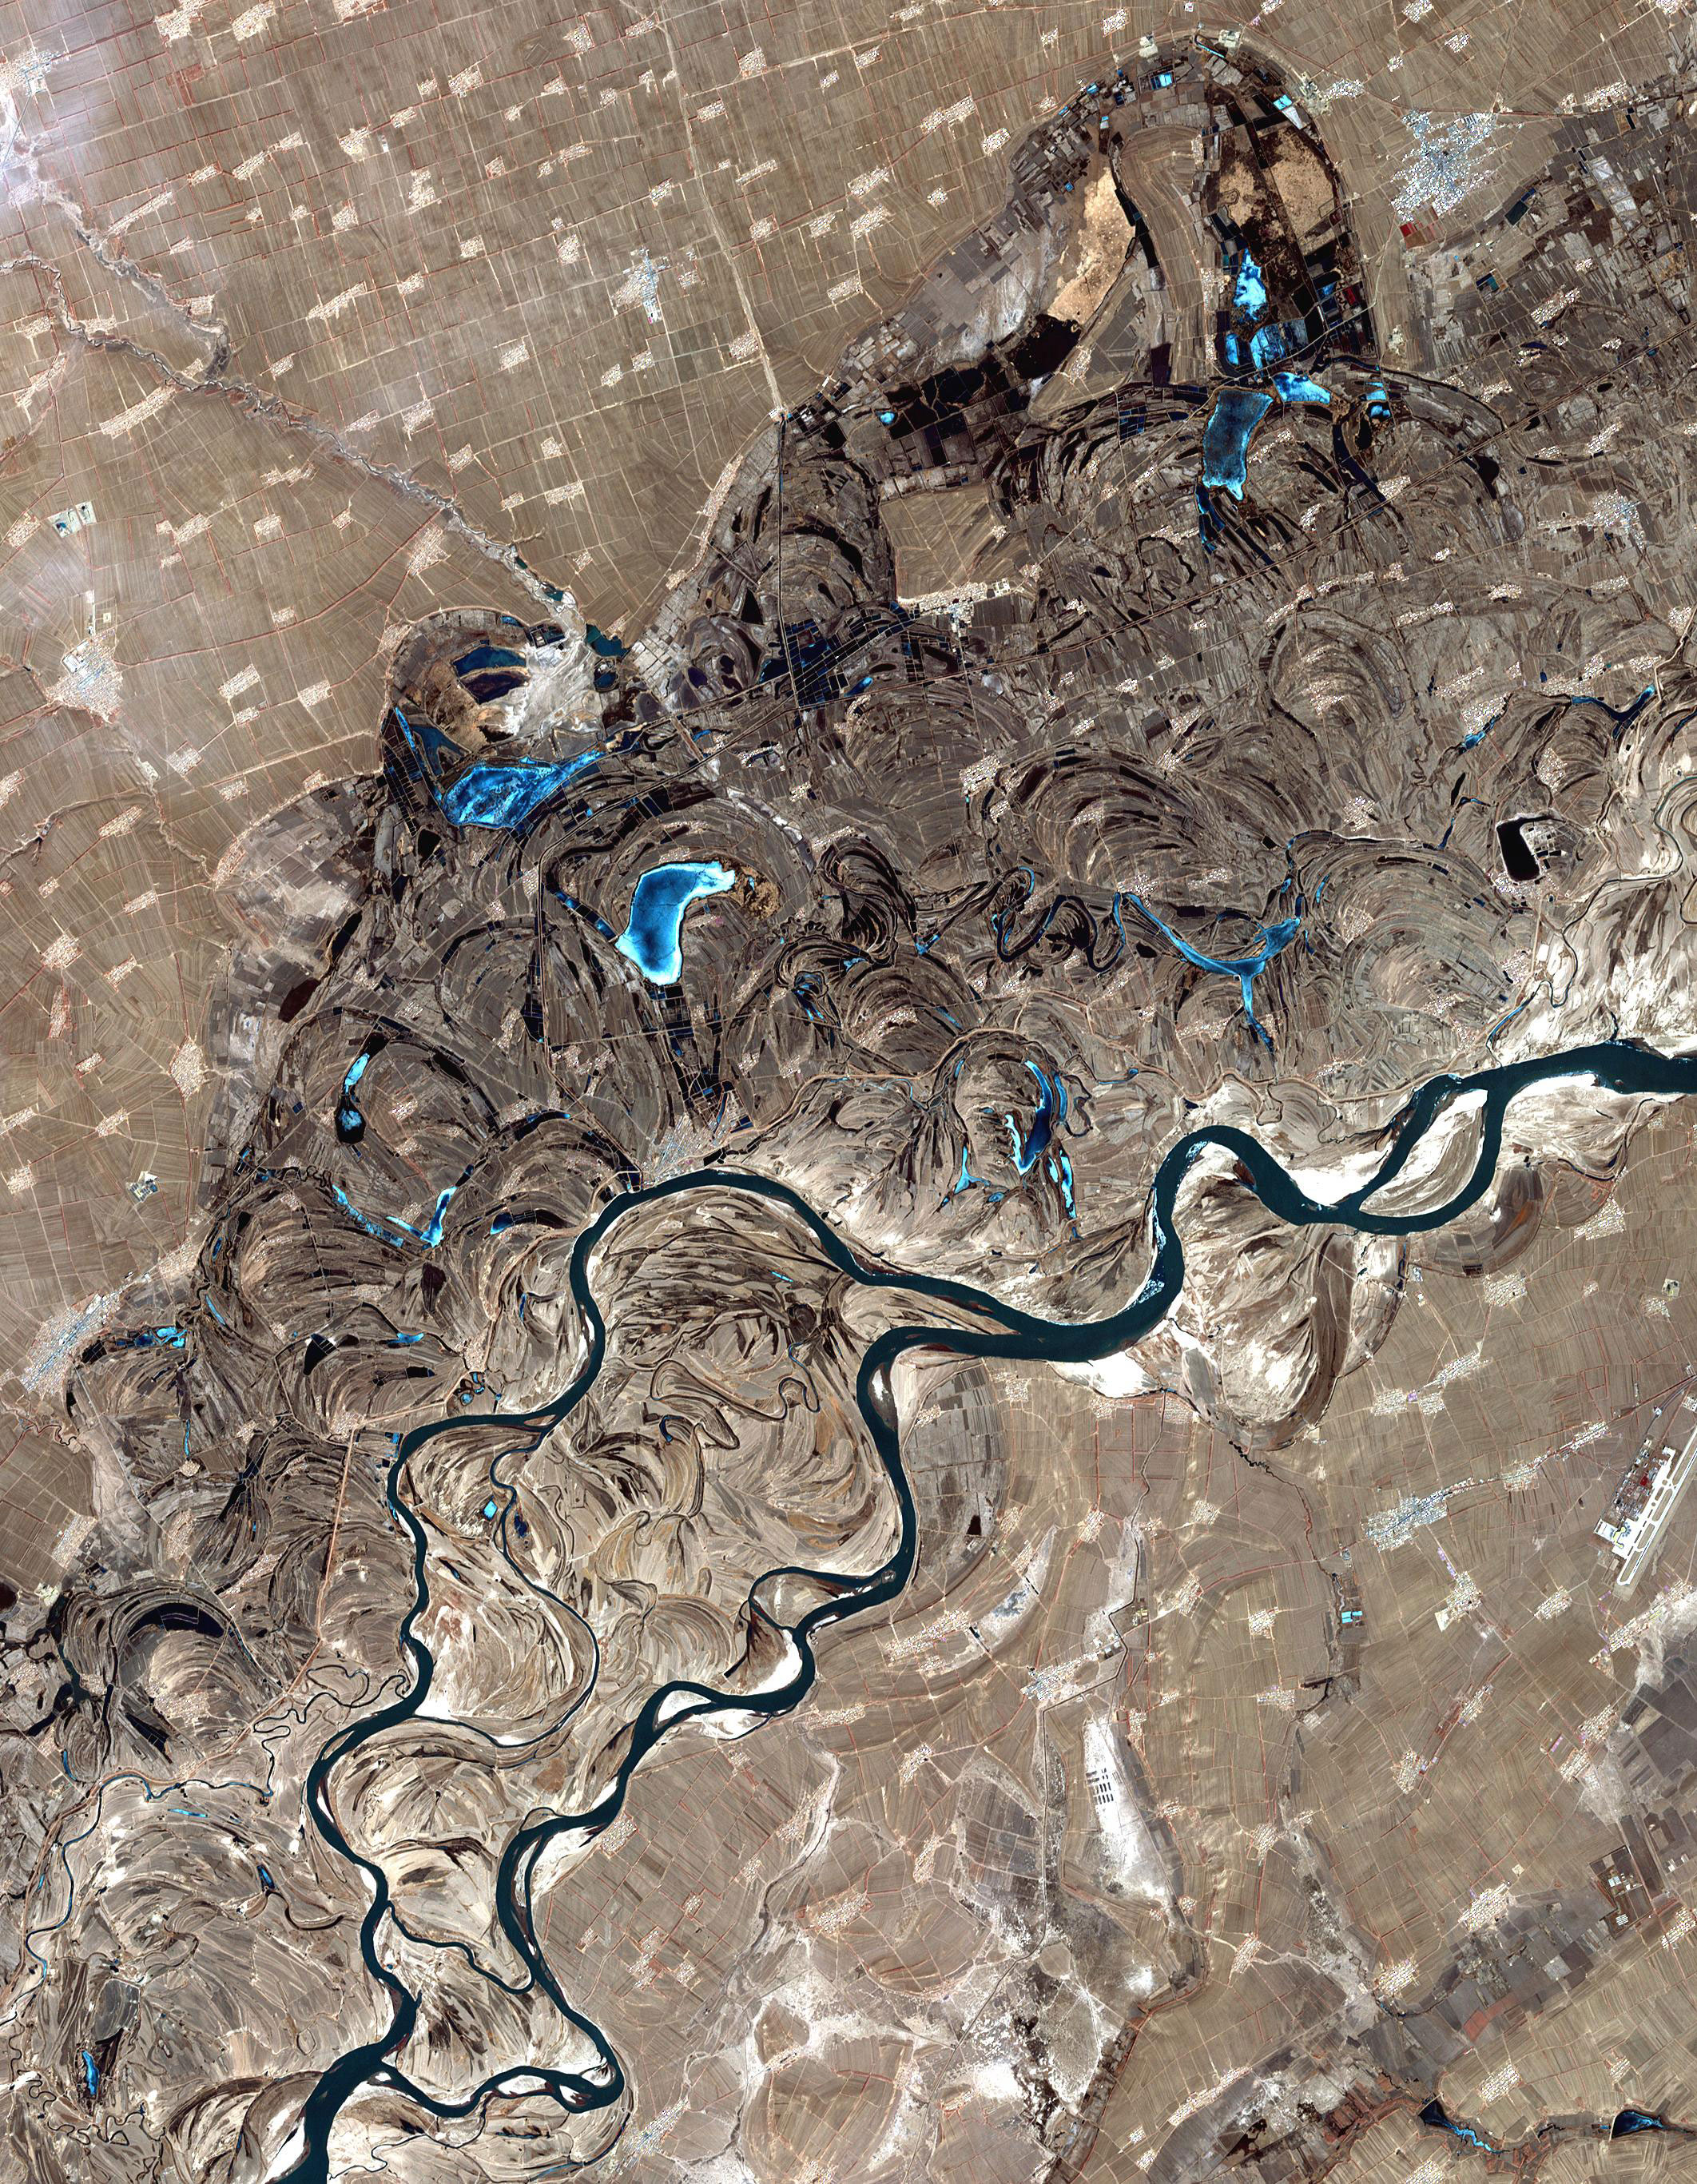 Today's Image of the Day comes thanks to the NASA Earth Observatory and features a look at the Songhua River in northern China.